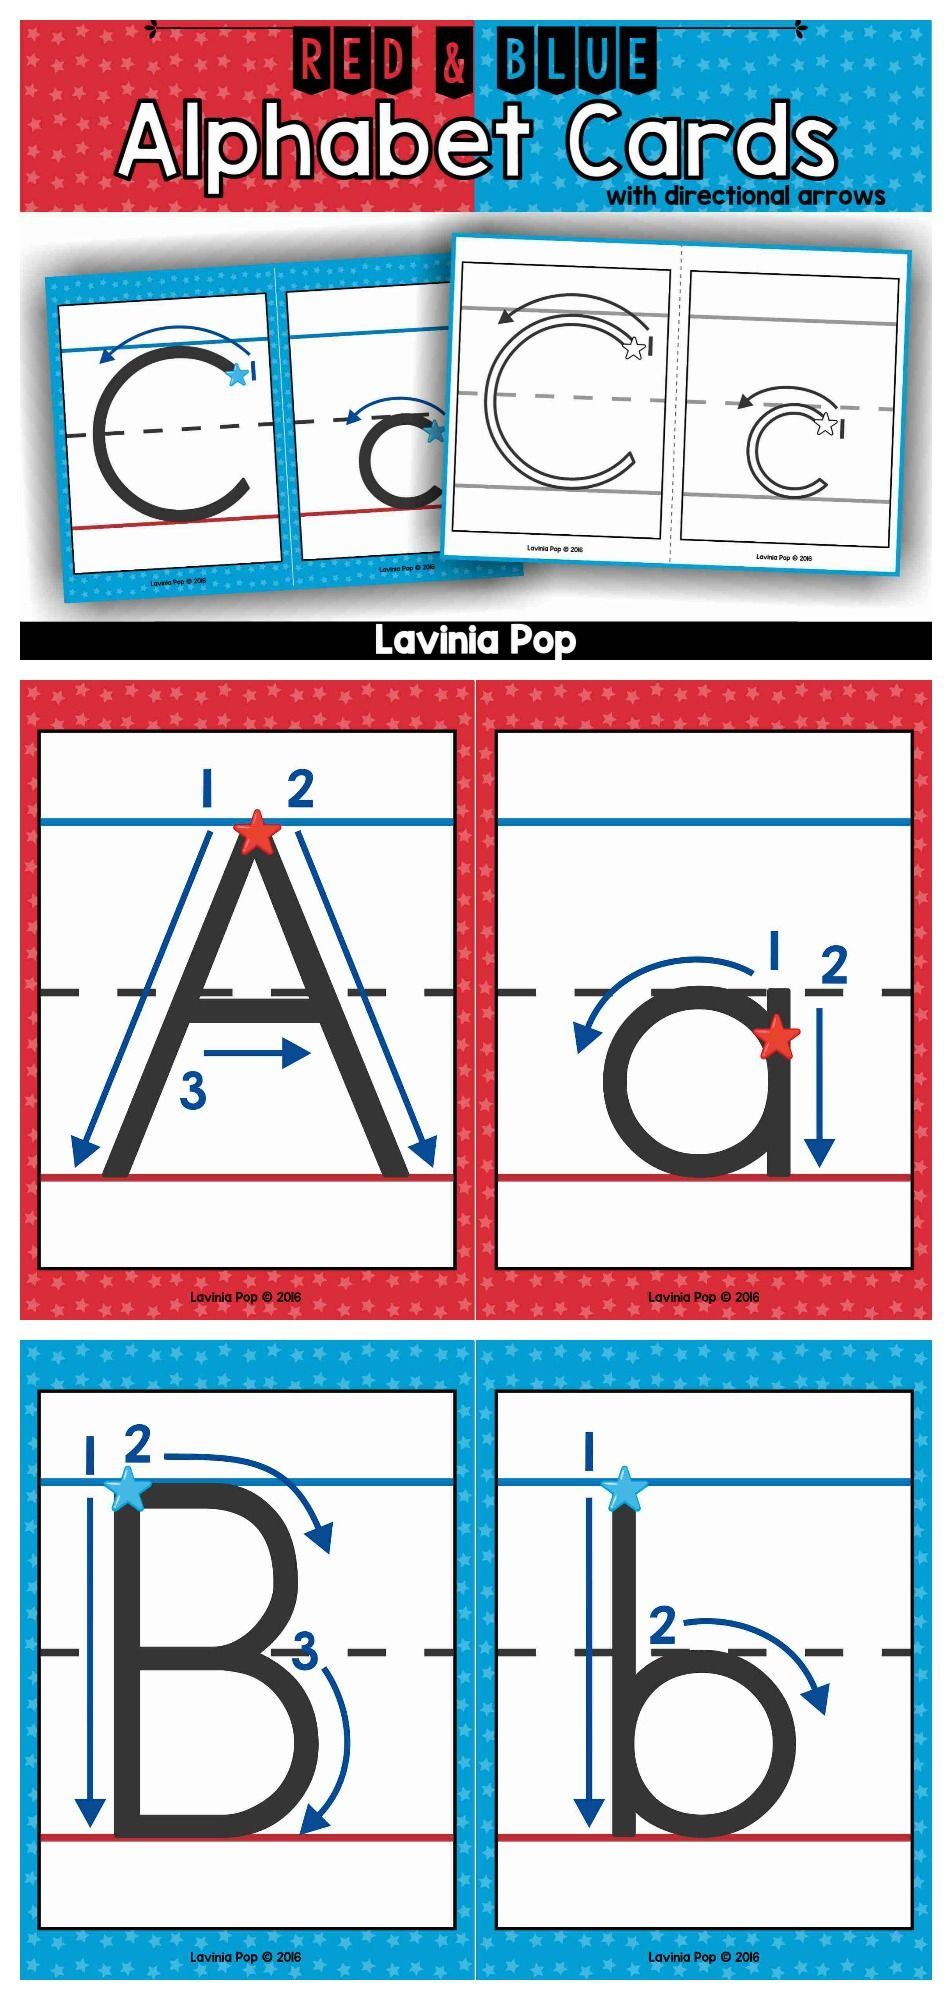 Alphabet Handwriting Cards With Directional Arrows - Red within Letter Tracing Directional Arrows